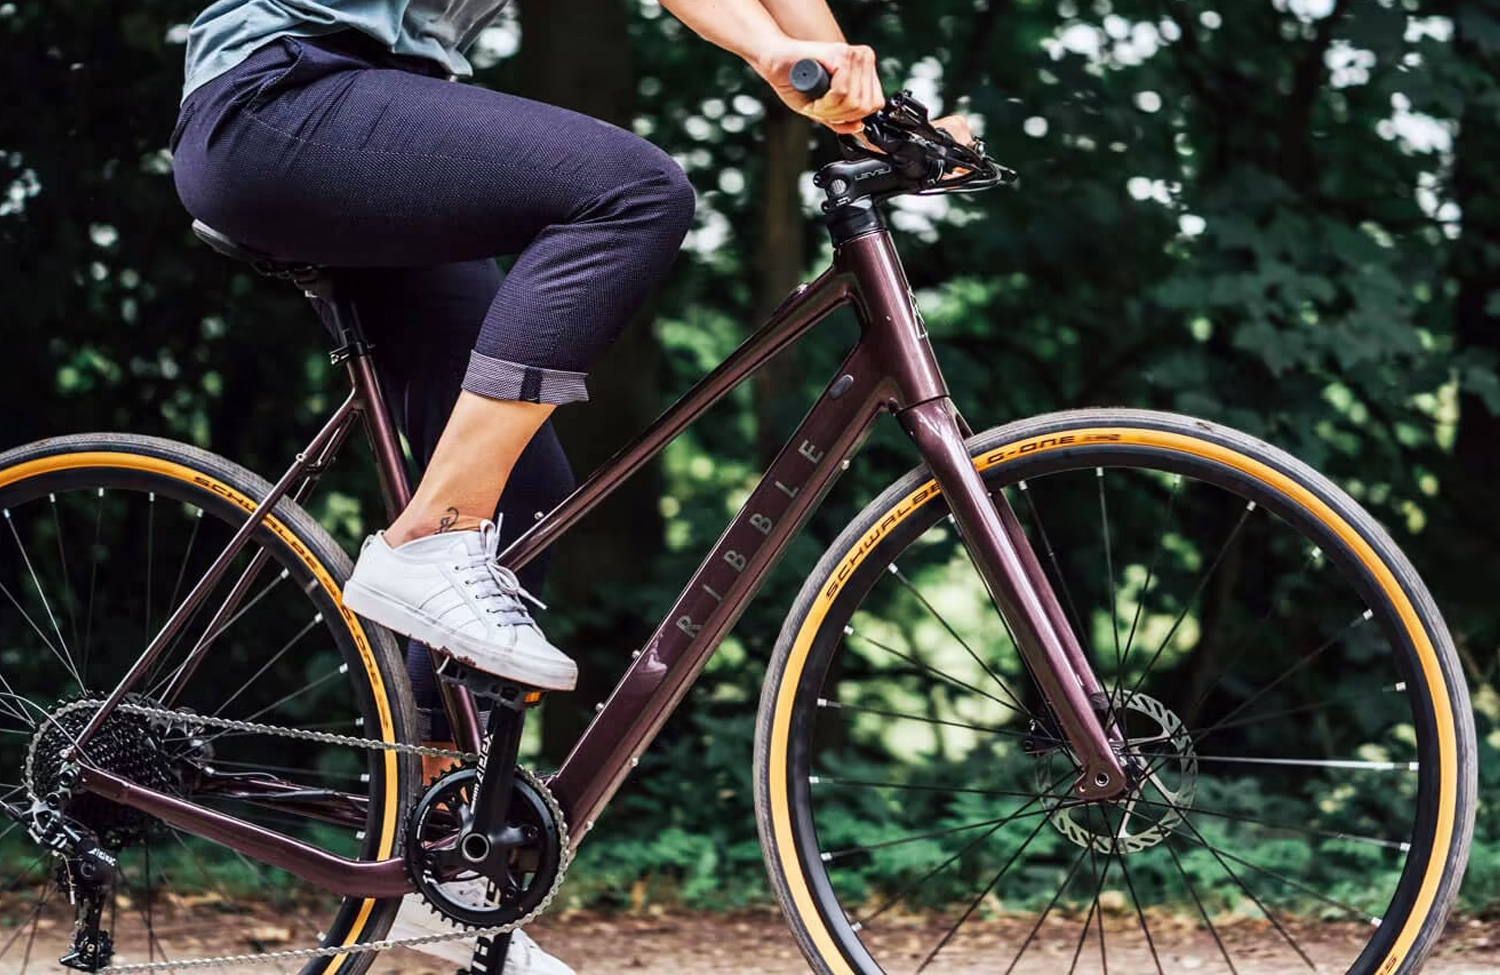 Ribble Hybrid Bikes: Lightweight and affordable e-bikes from the UK